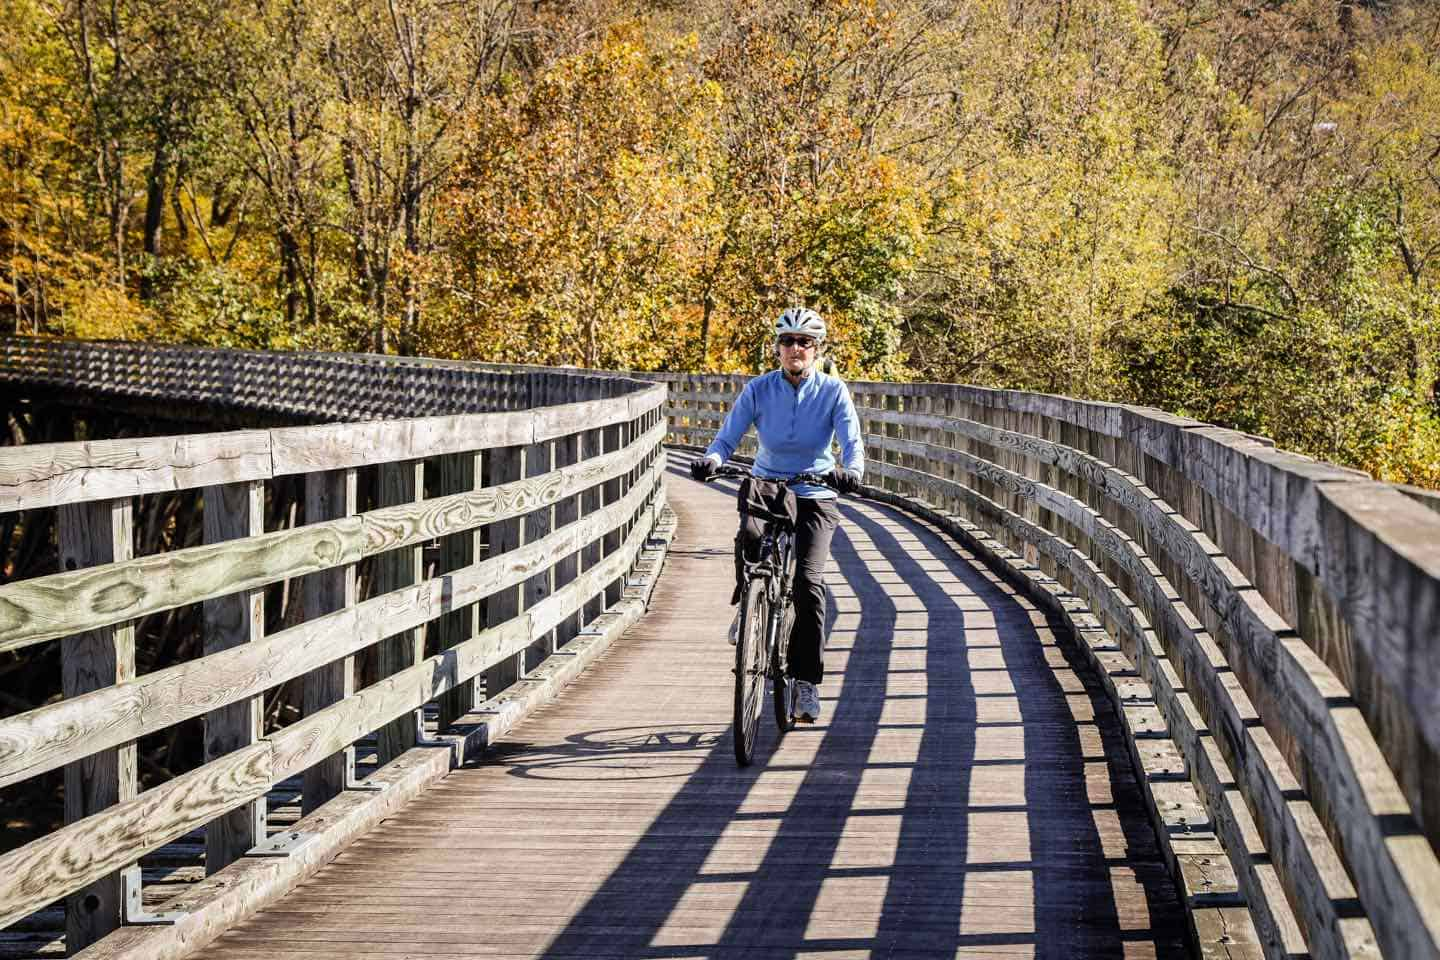 bicyclist riding on a wooden bridge of the Virginia Creeper Trail